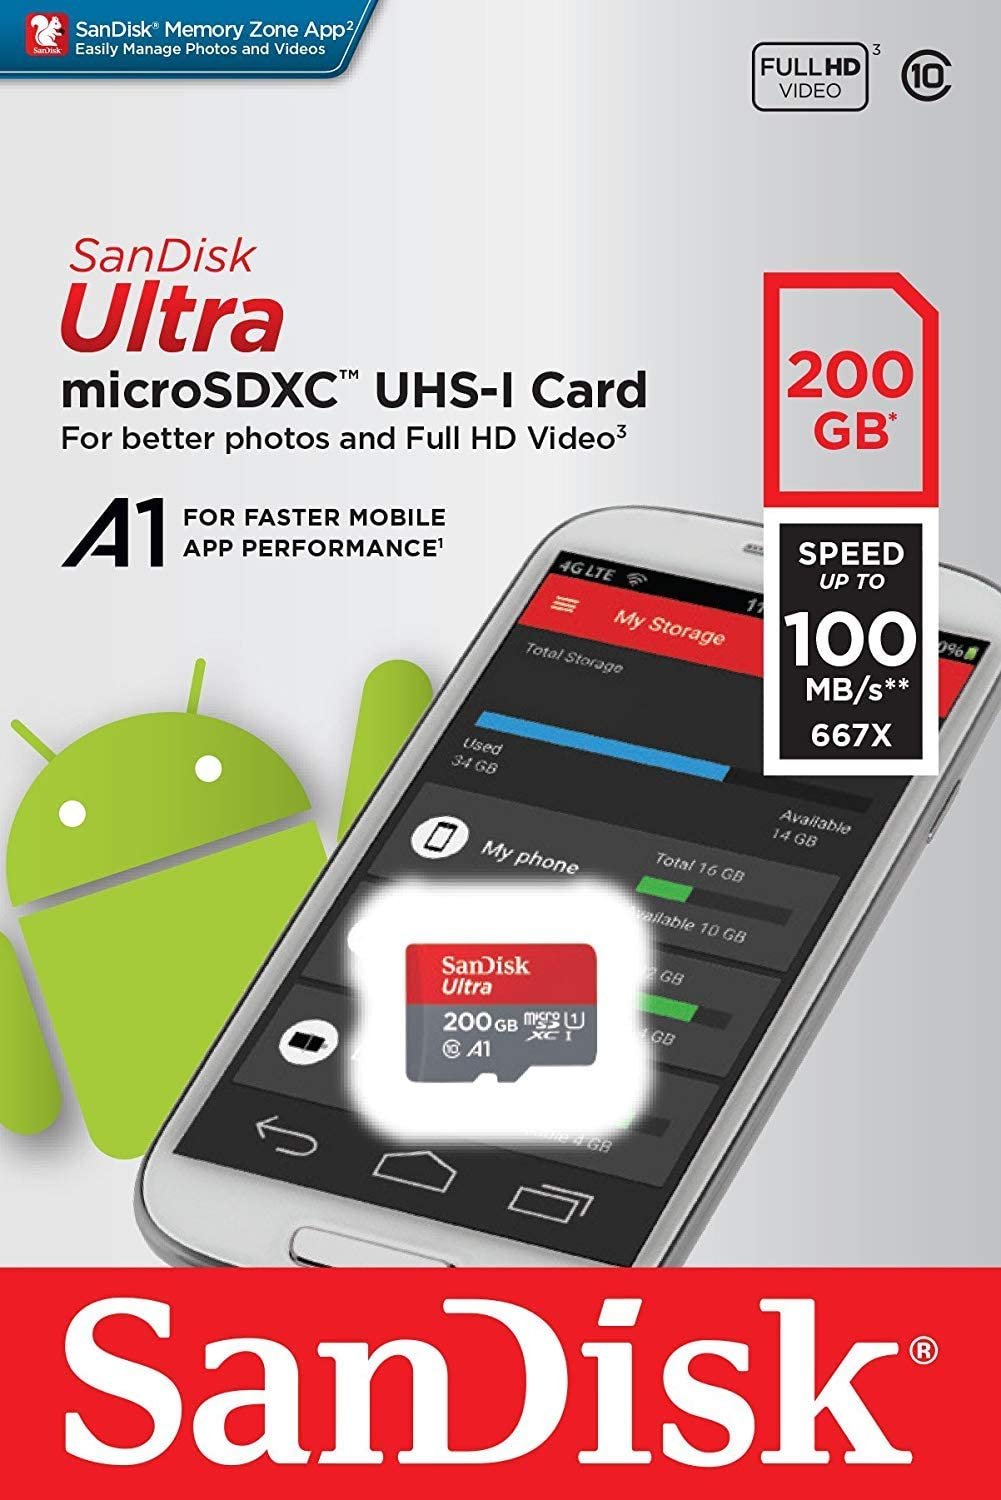 100MBs A1 U1 C10 Works with SanDisk 4G SanDisk Ultra 200GB MicroSDXC Verified for Alcatel OneTouch POP Star by SanFlash